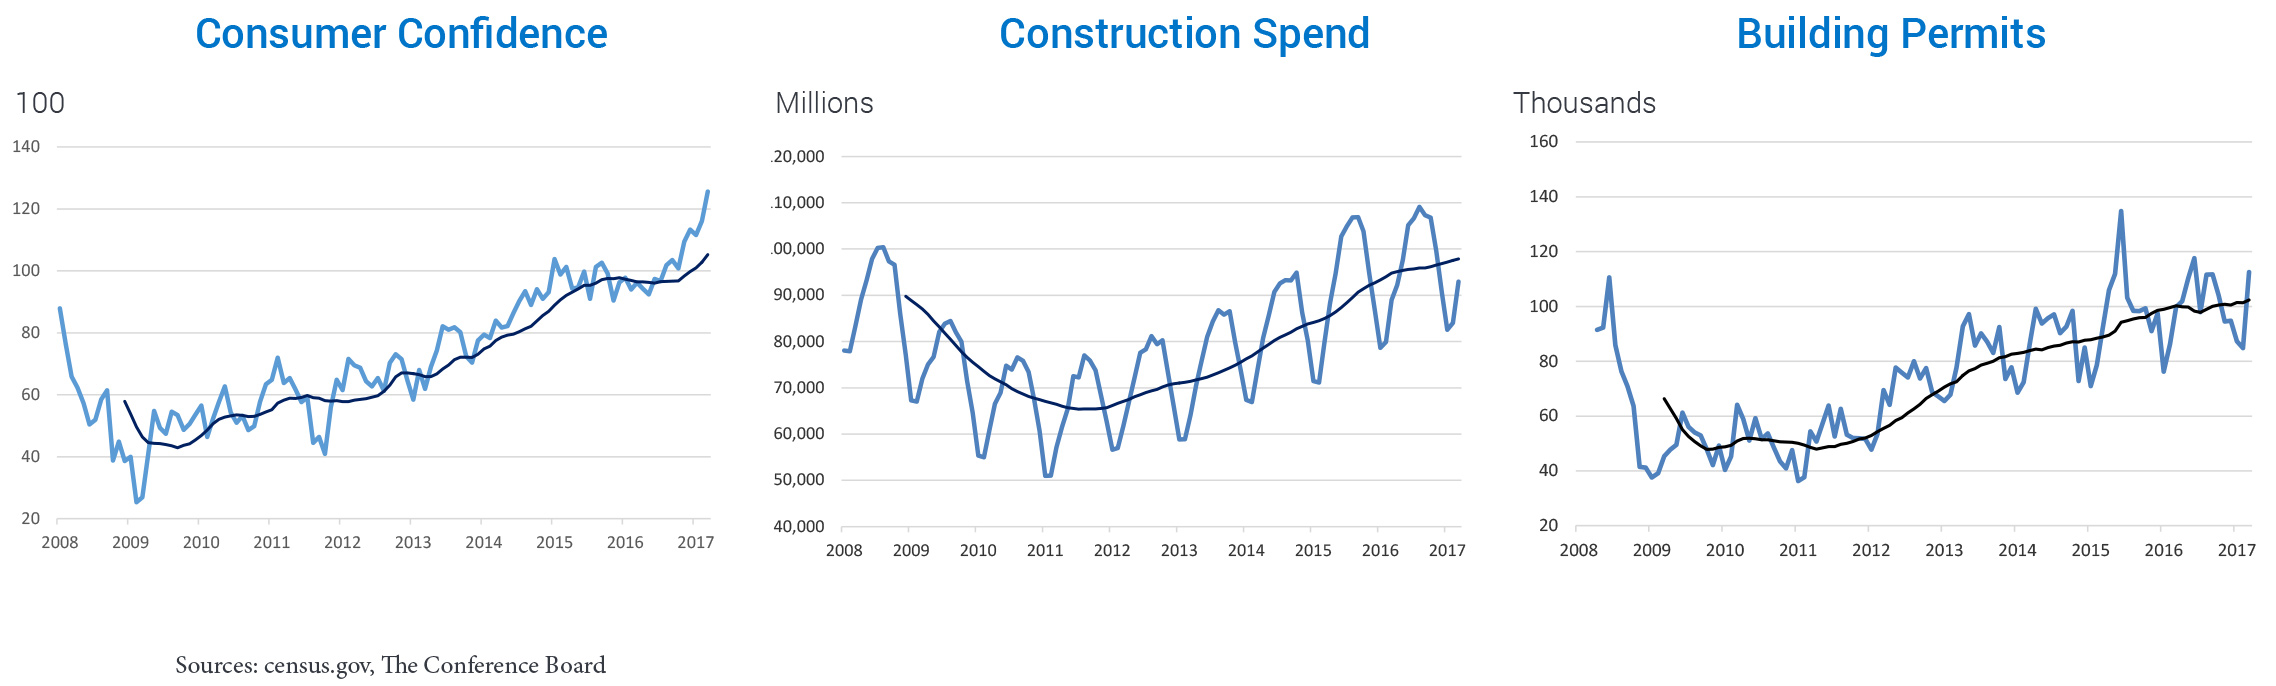 Consumer Confidence, Construction Spend, Building Permits